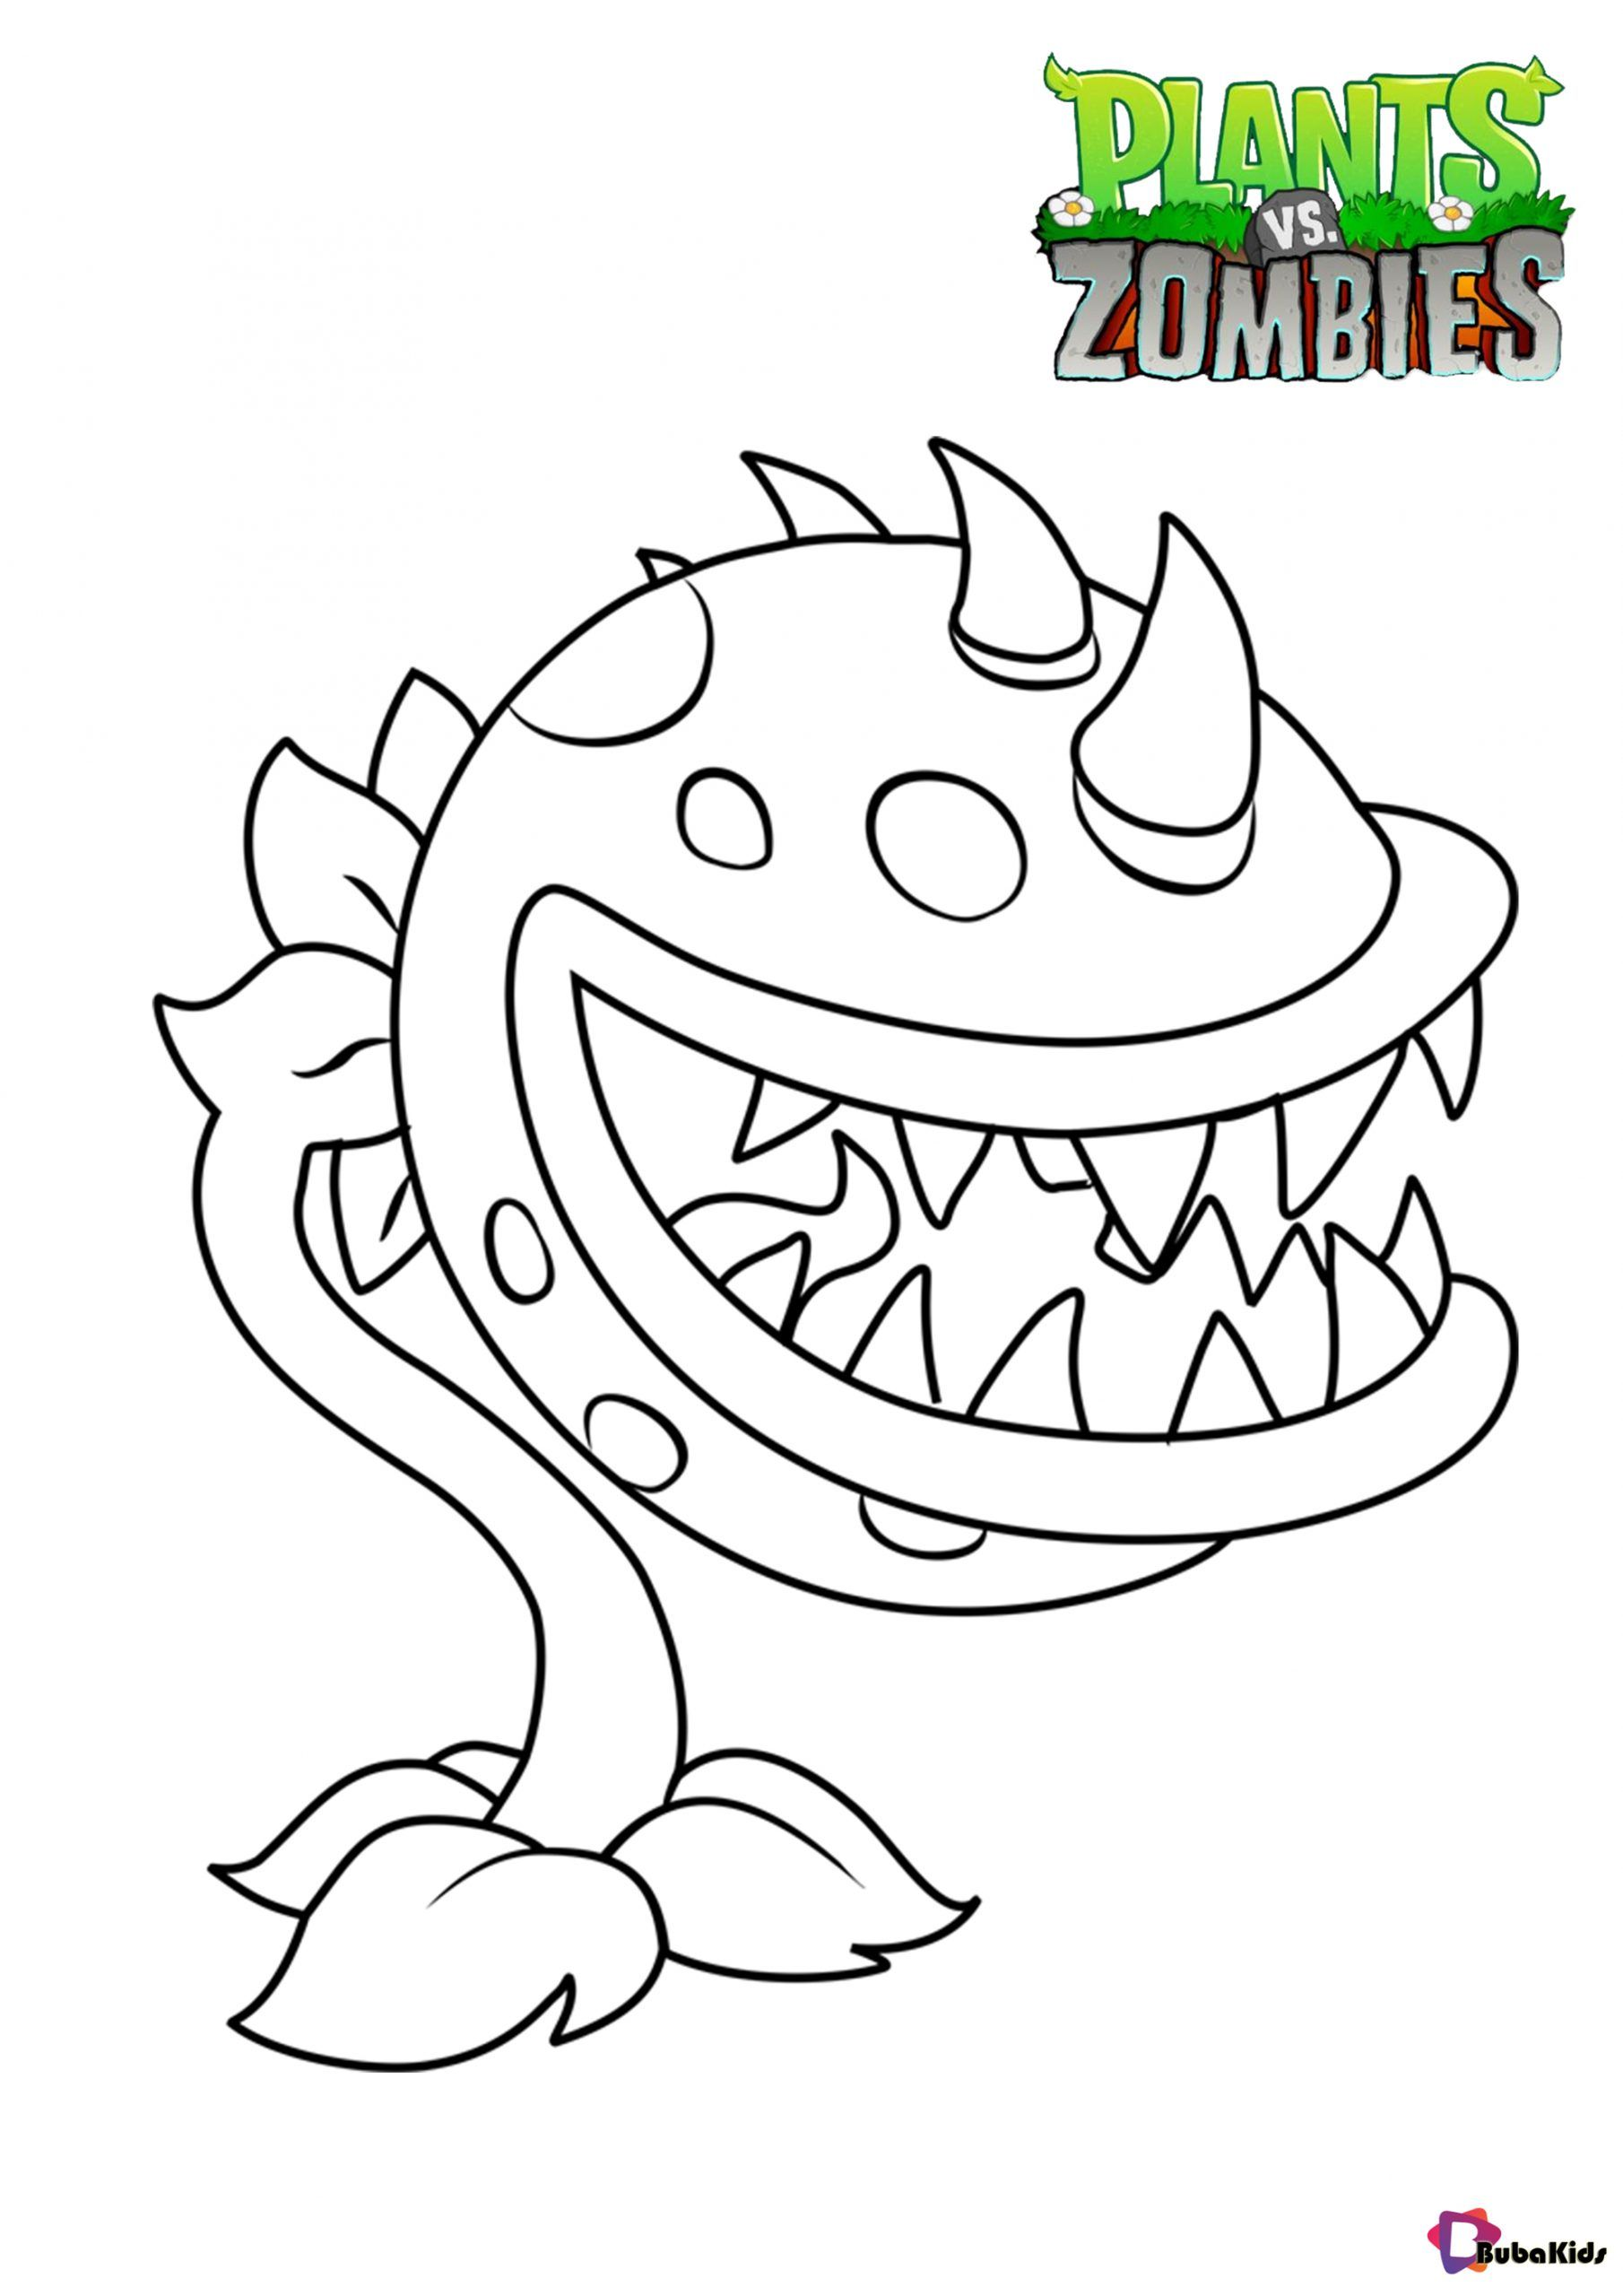 Plants Vs Zombies Chomper Coloring Pages Collection Of Cartoon Coloring Pages For Teenag In 2020 Precious Moments Coloring Pages Coloring Pages Cartoon Coloring Pages